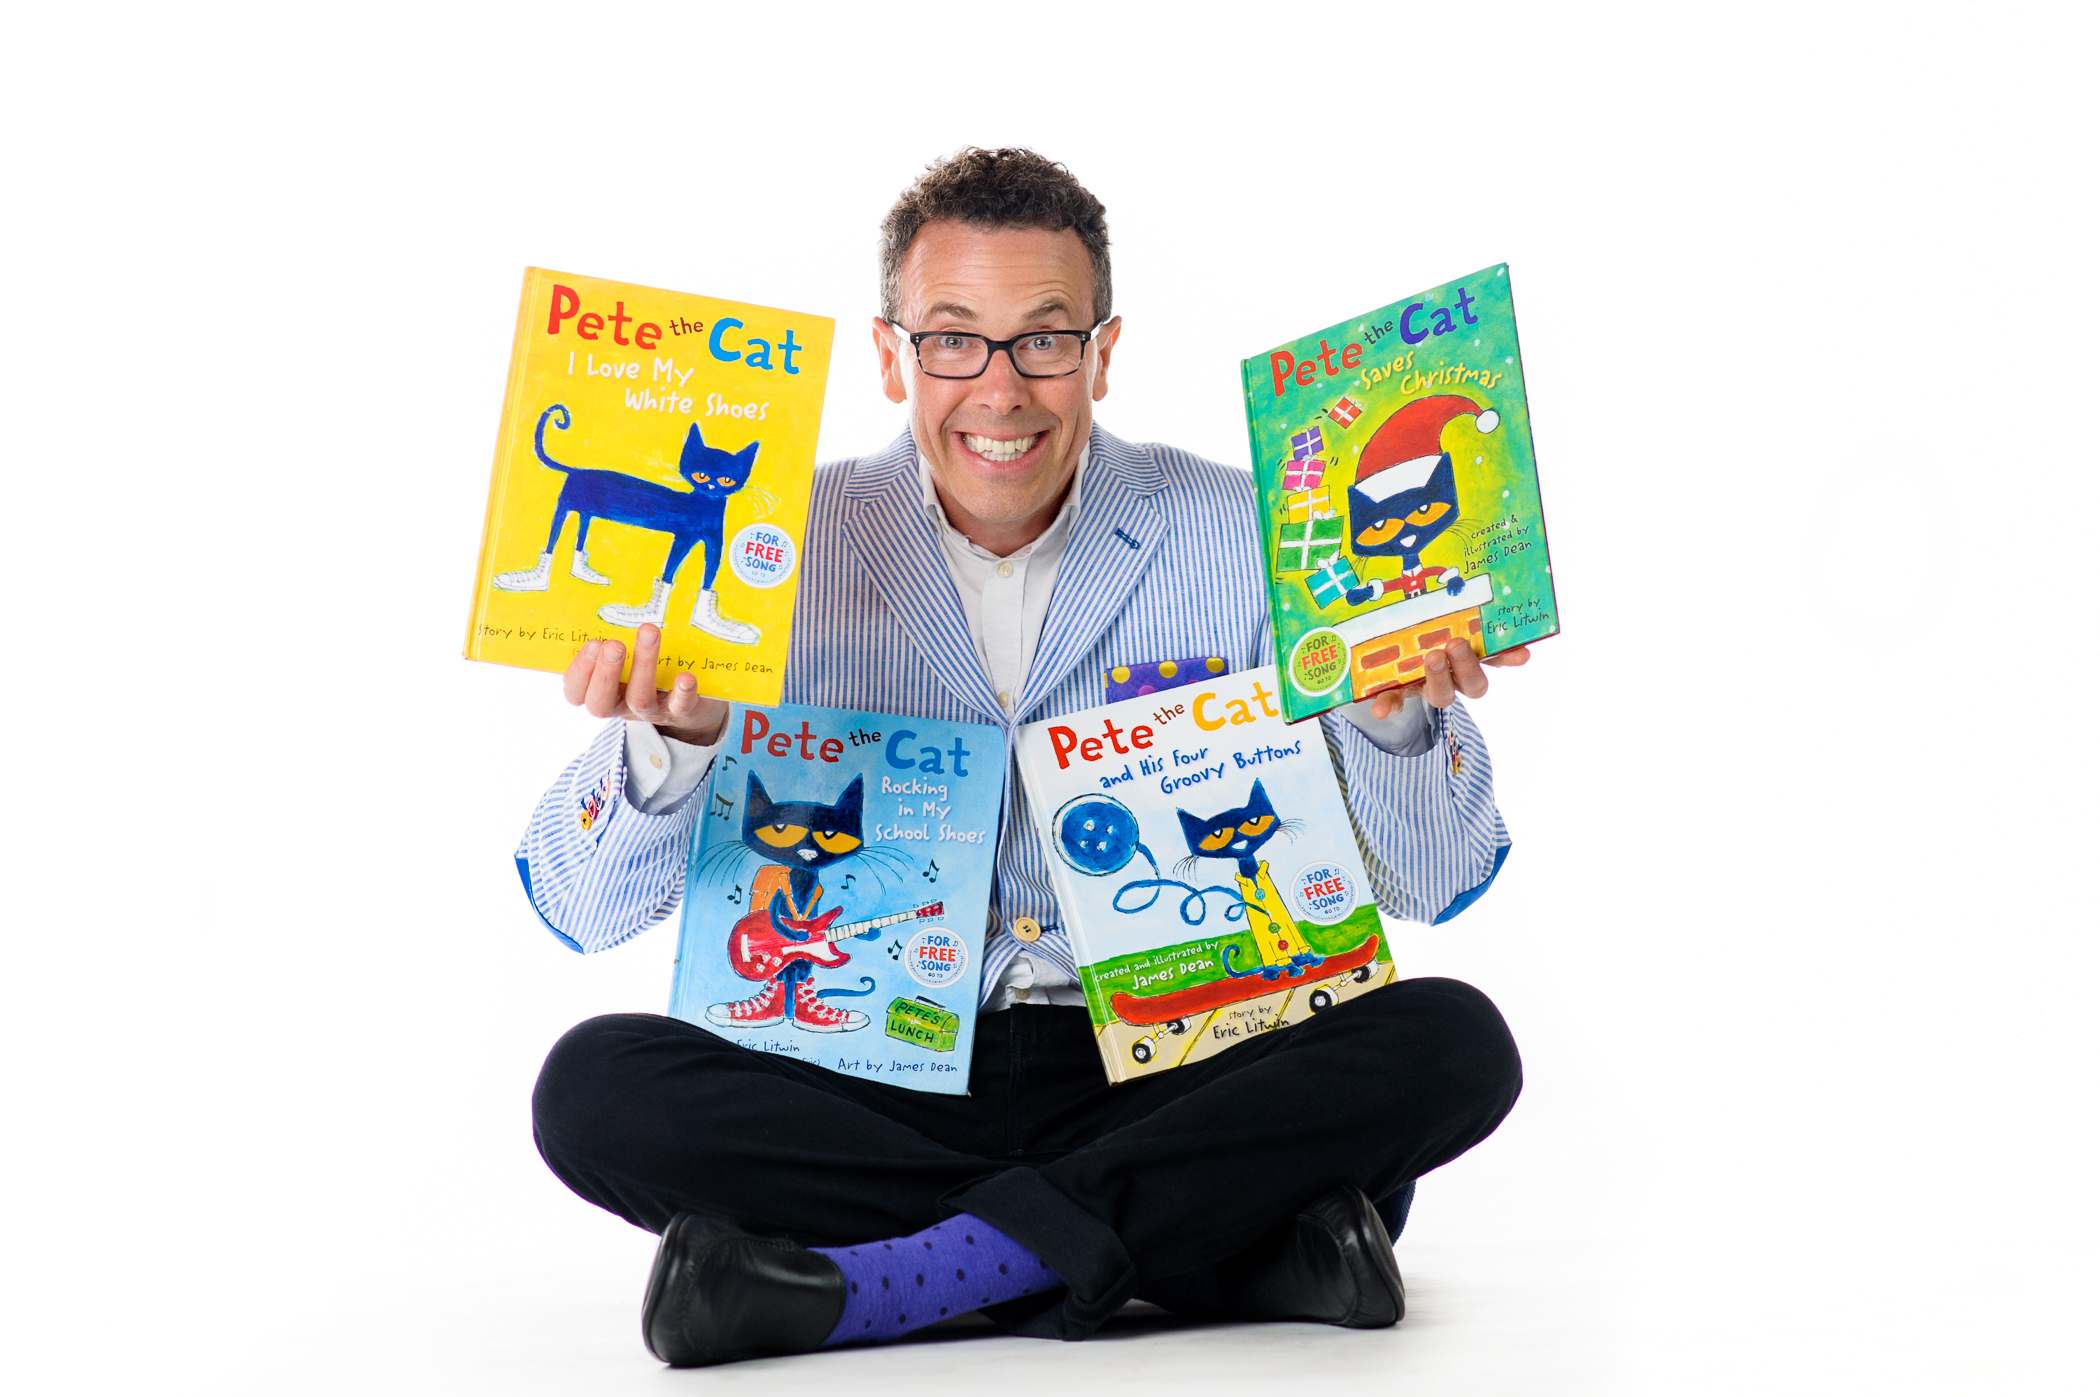 photo of Eric Litwin holding the four Pete the Cat books he authored